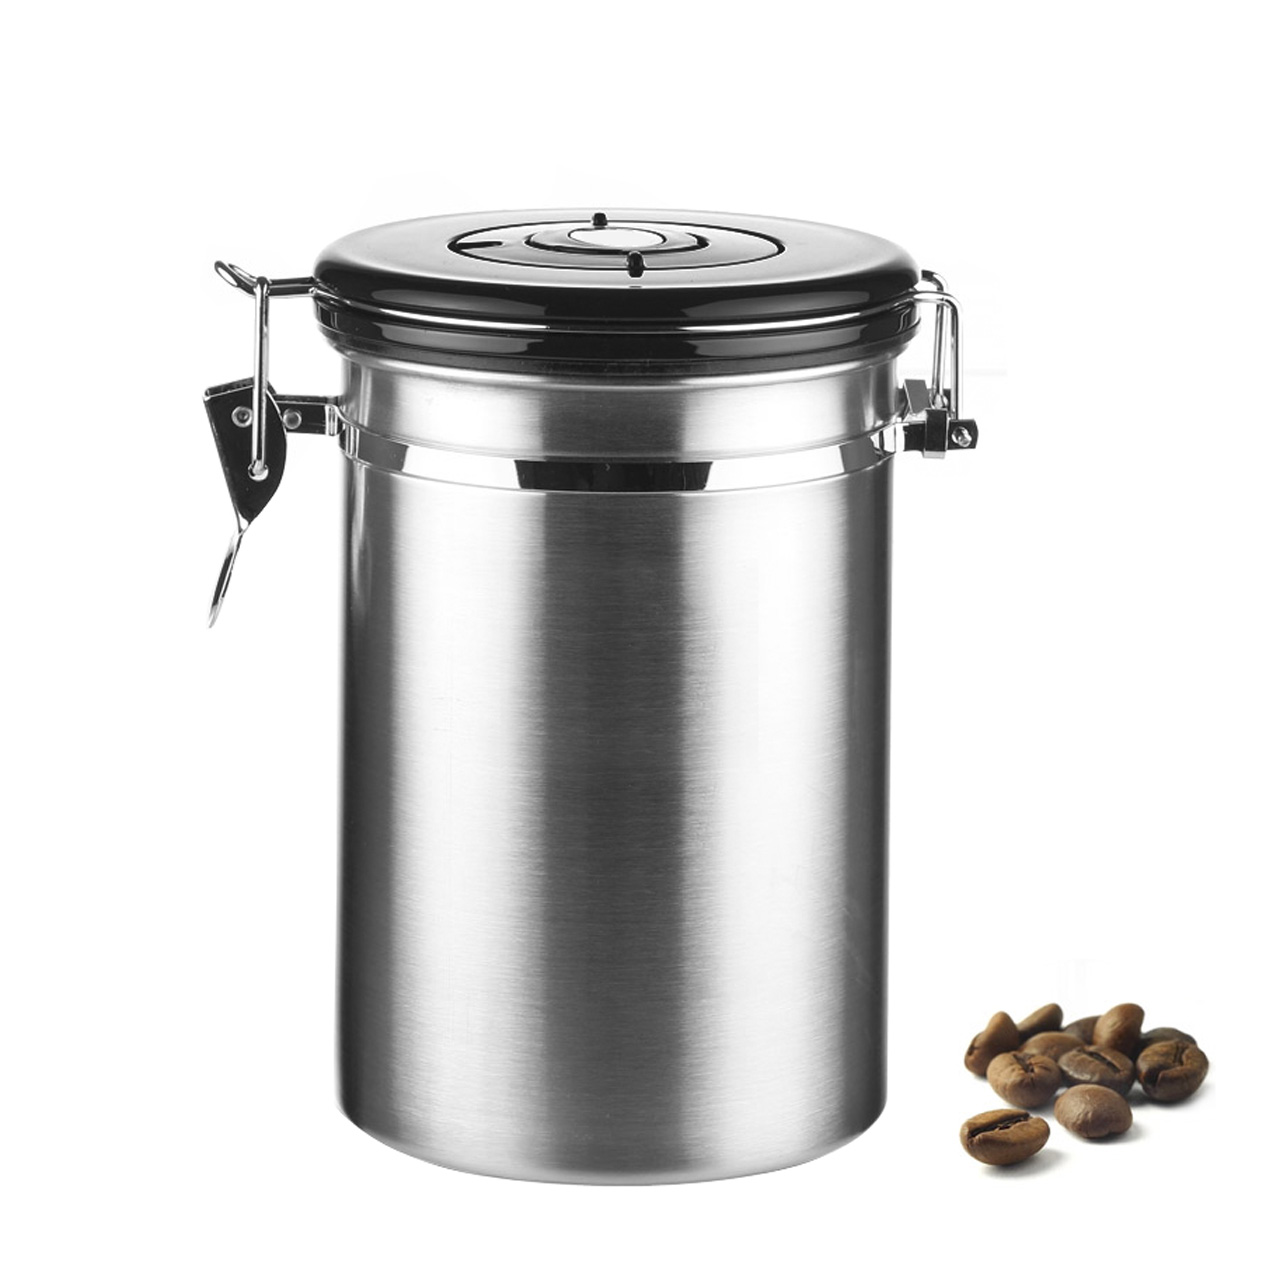 popular metal kitchen canisters buy cheap metal kitchen canisters 1l coffee tea sugar storage tanks sealed cans 18 8 stainless steel canisters kitchen storage